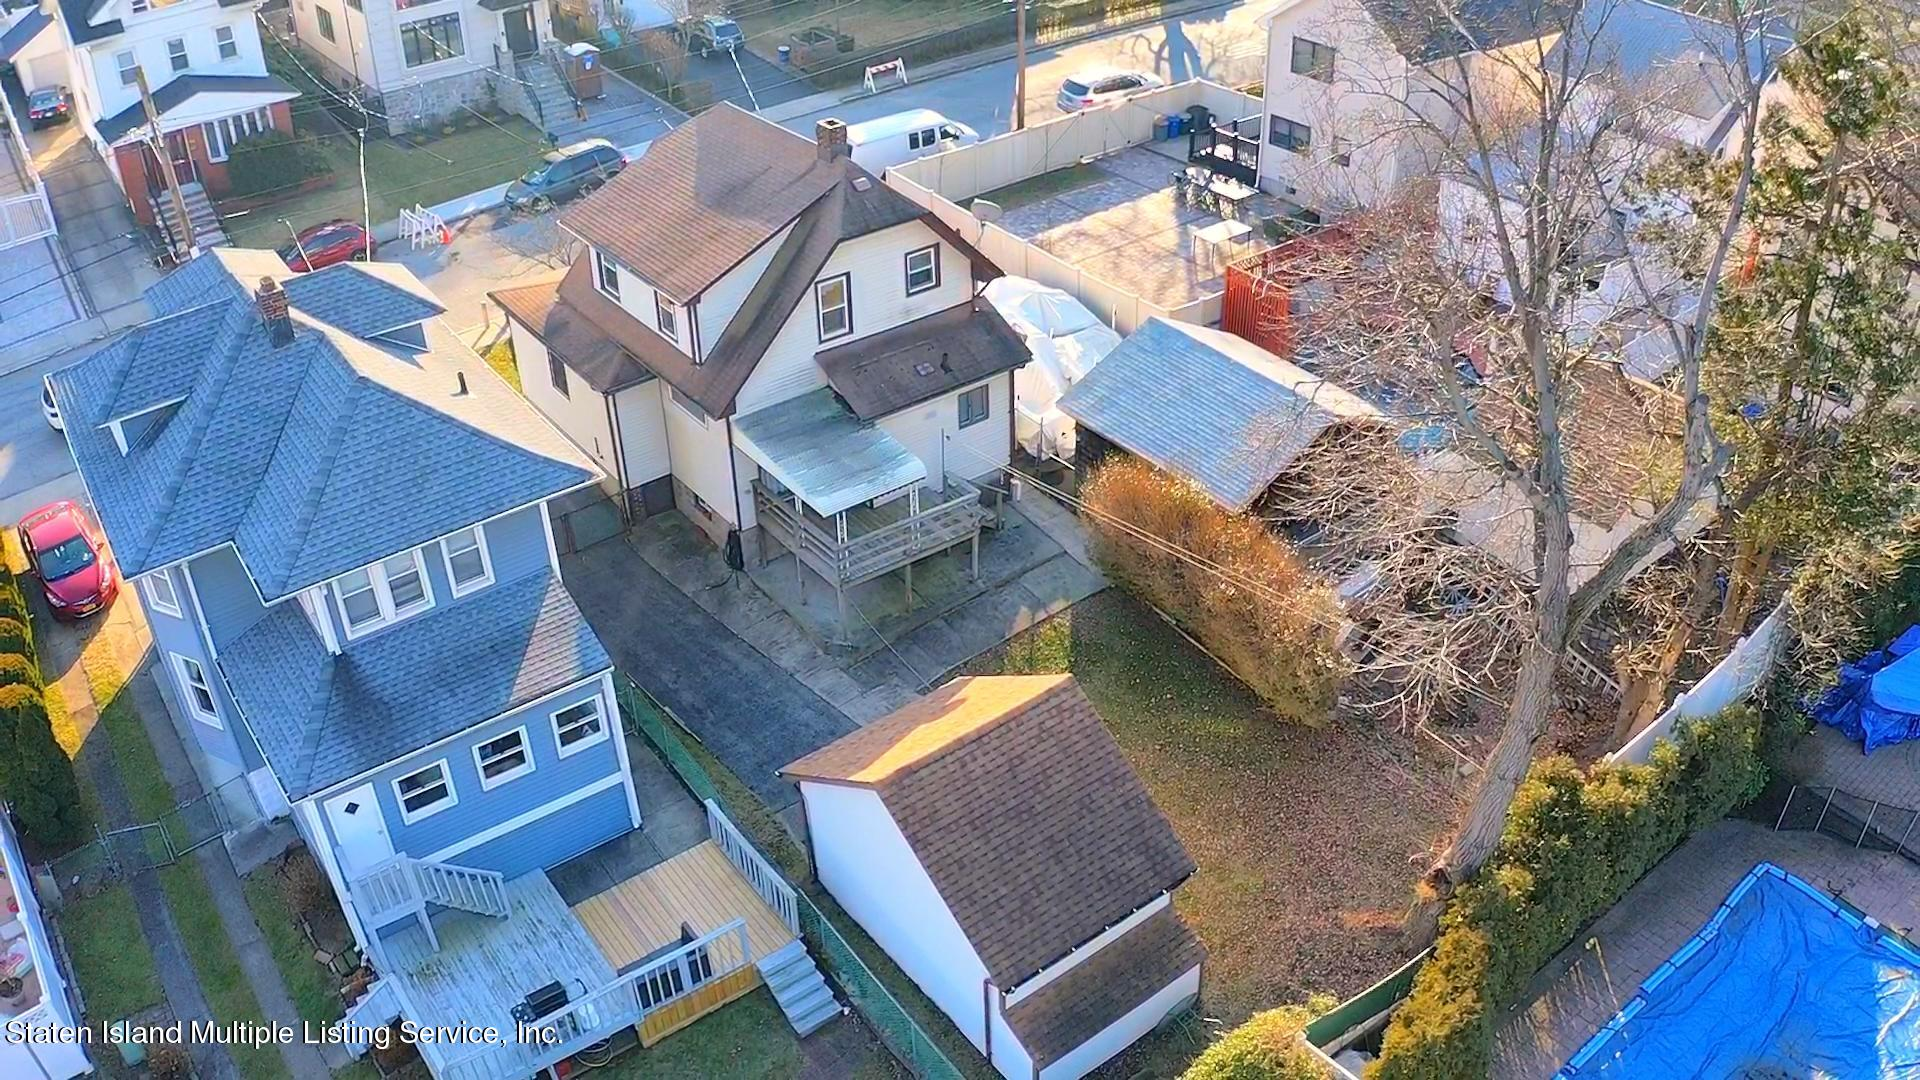 Single Family - Detached 97 Knox Place  Staten Island, NY 10314, MLS-1143147-22